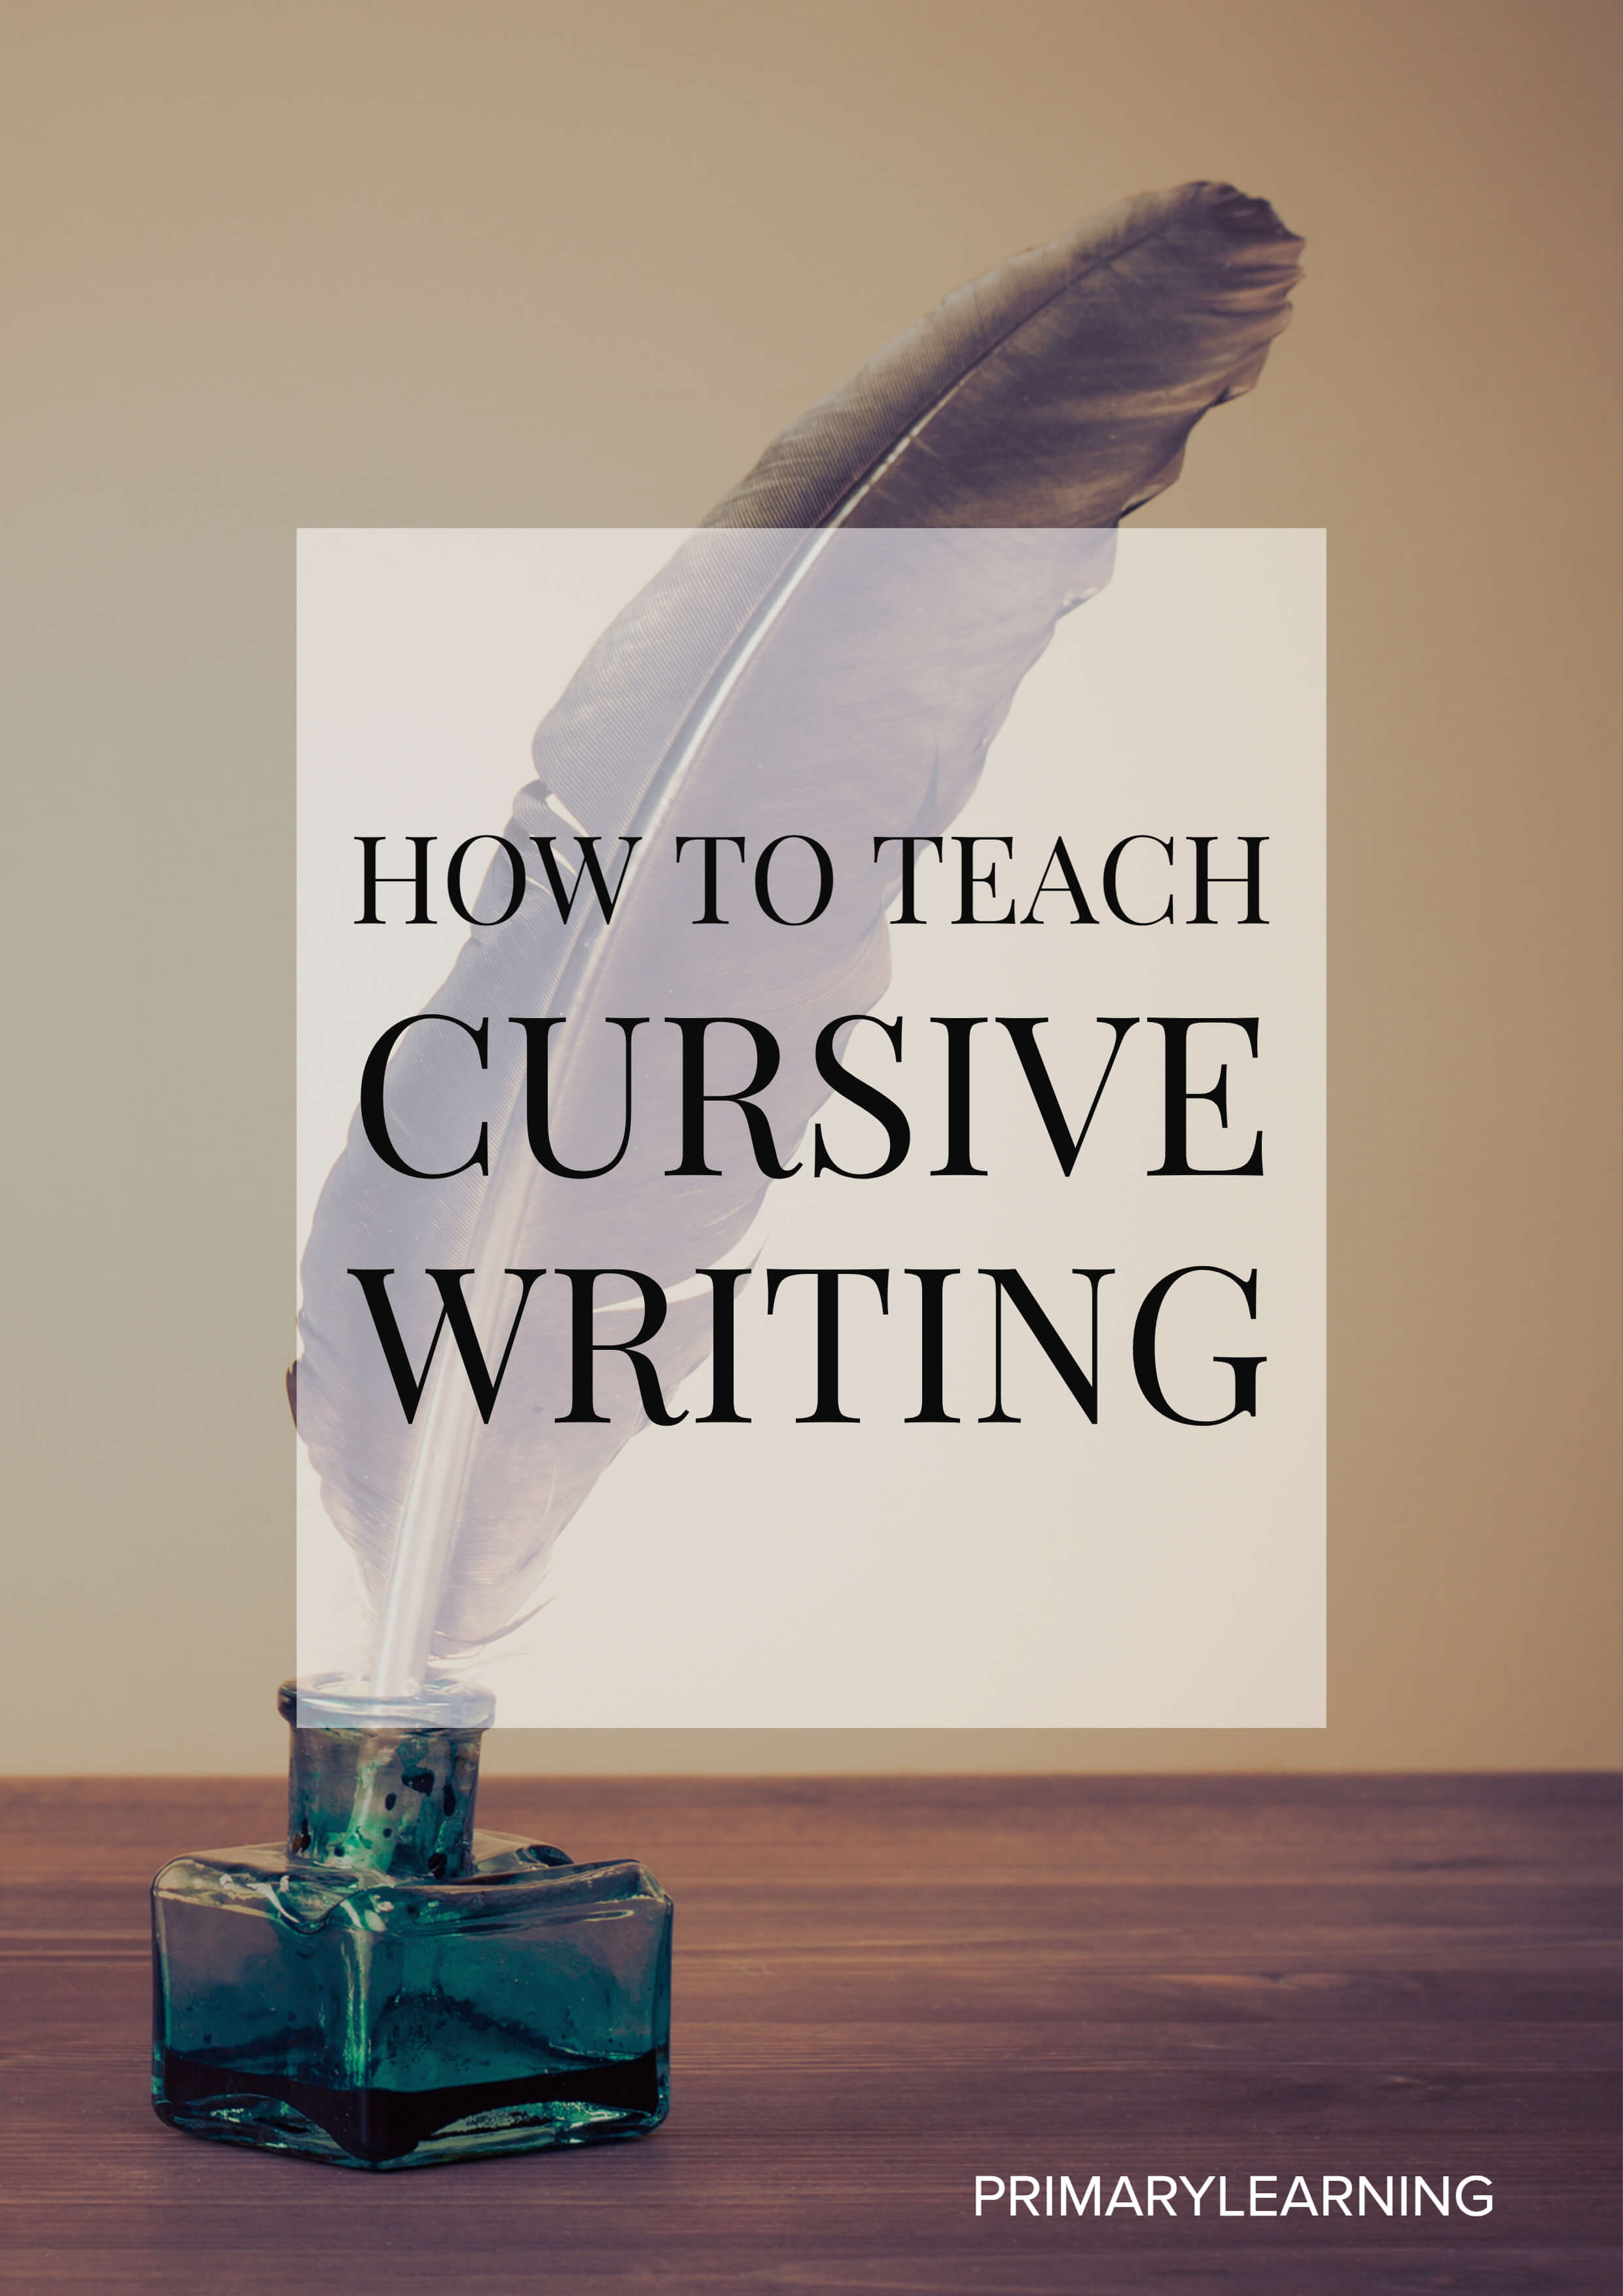 How To Teach Cursive Writing